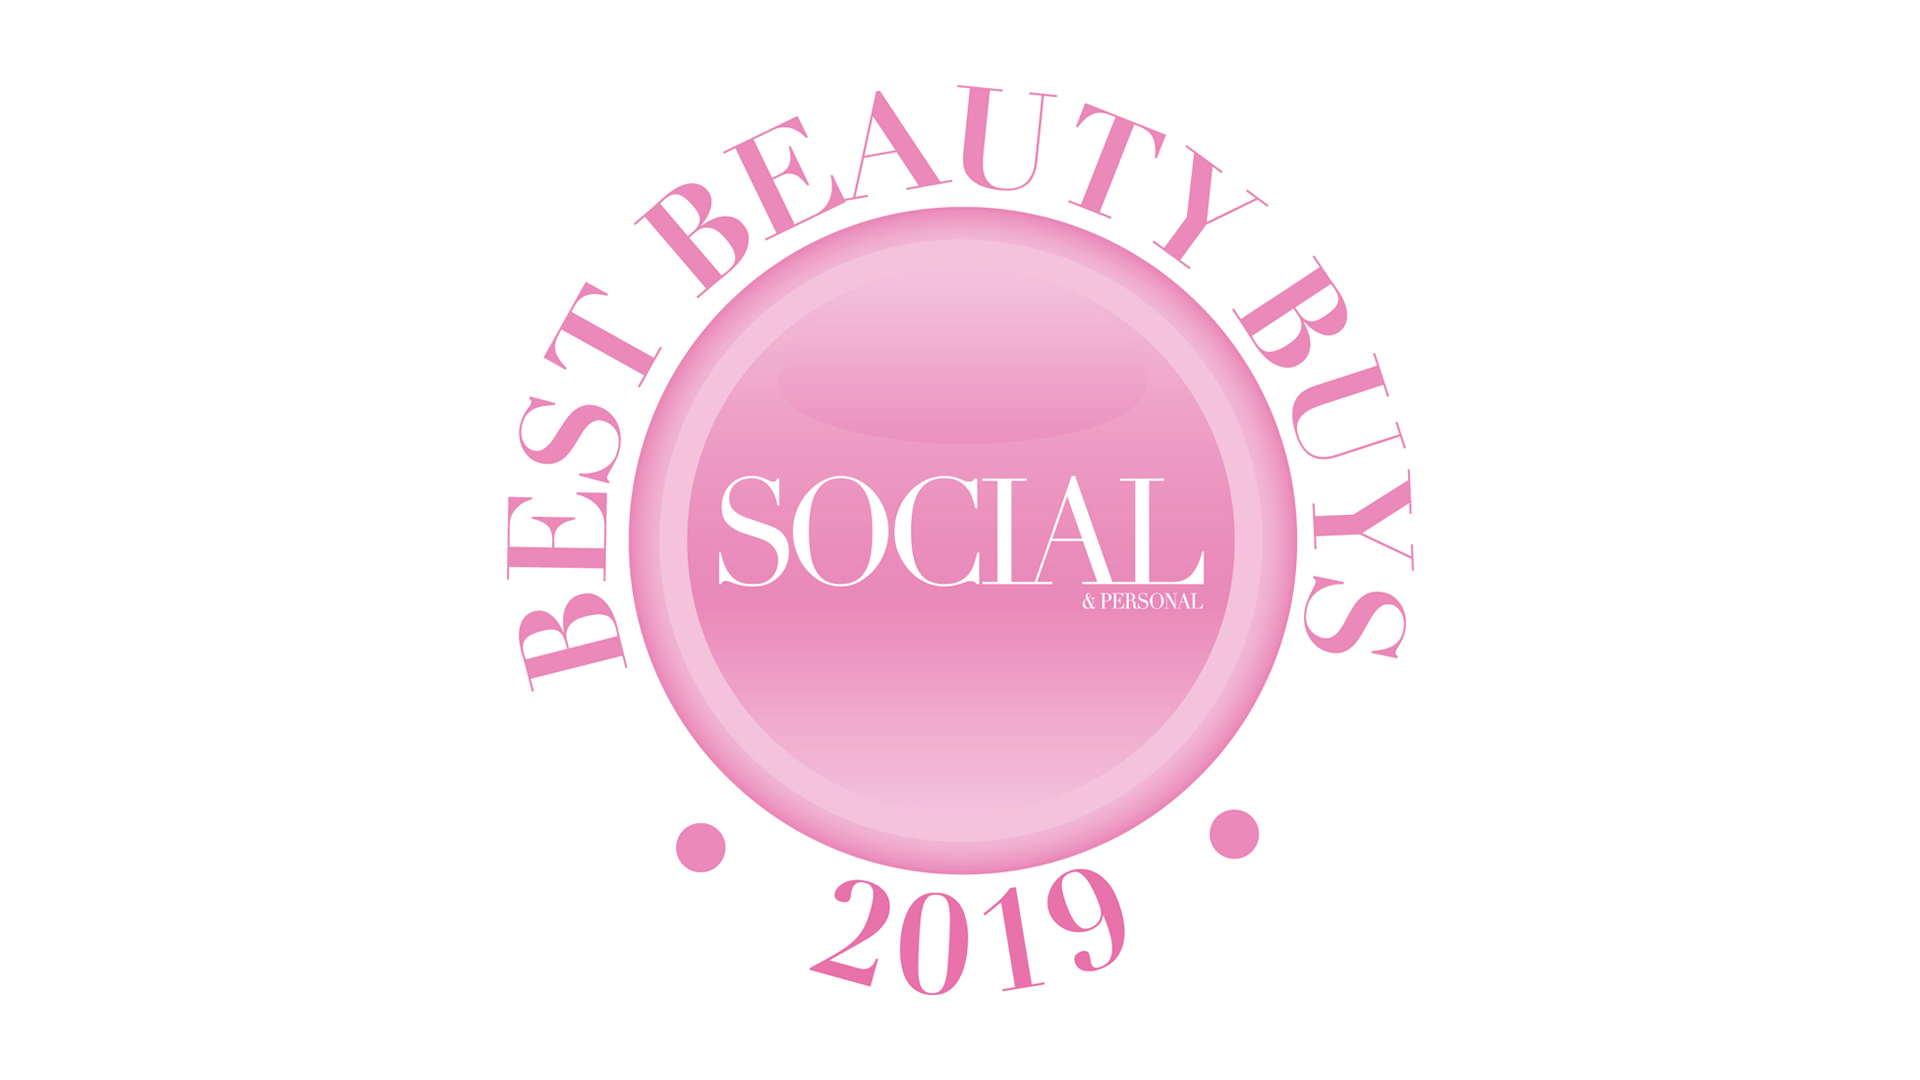 Best Beauty Buys Social 2019